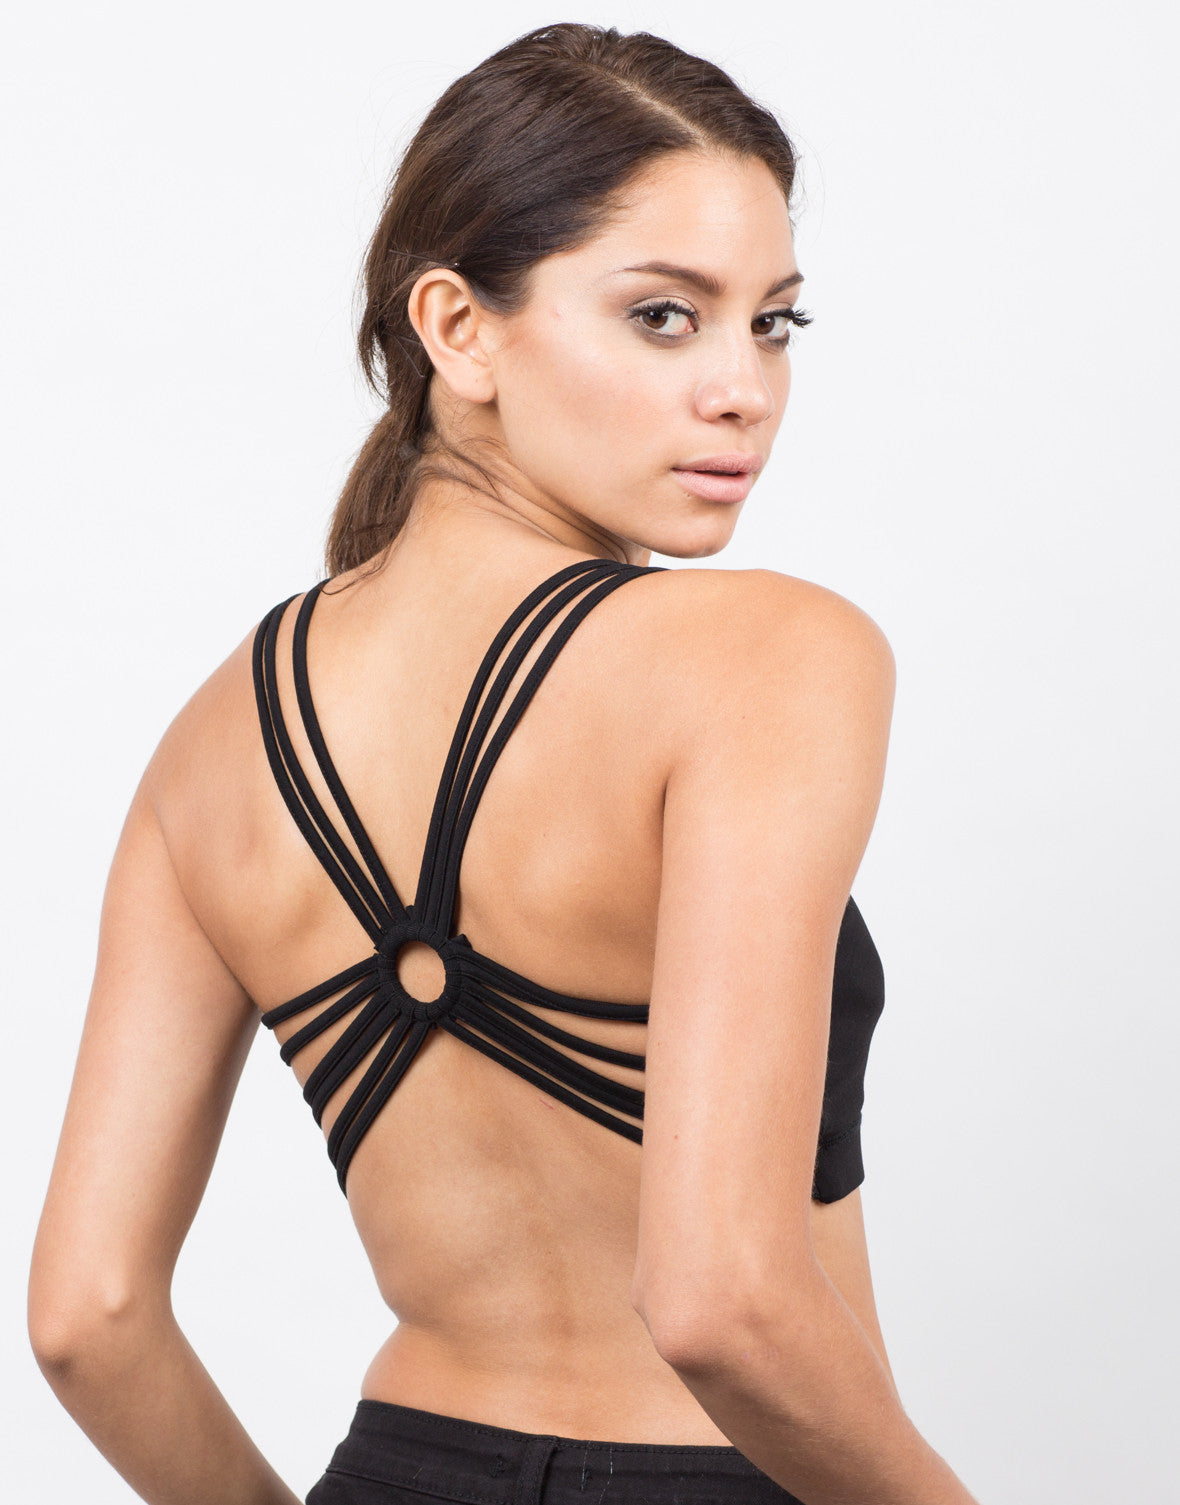 Back View of Front View of Strappy Racerback Sports Bra